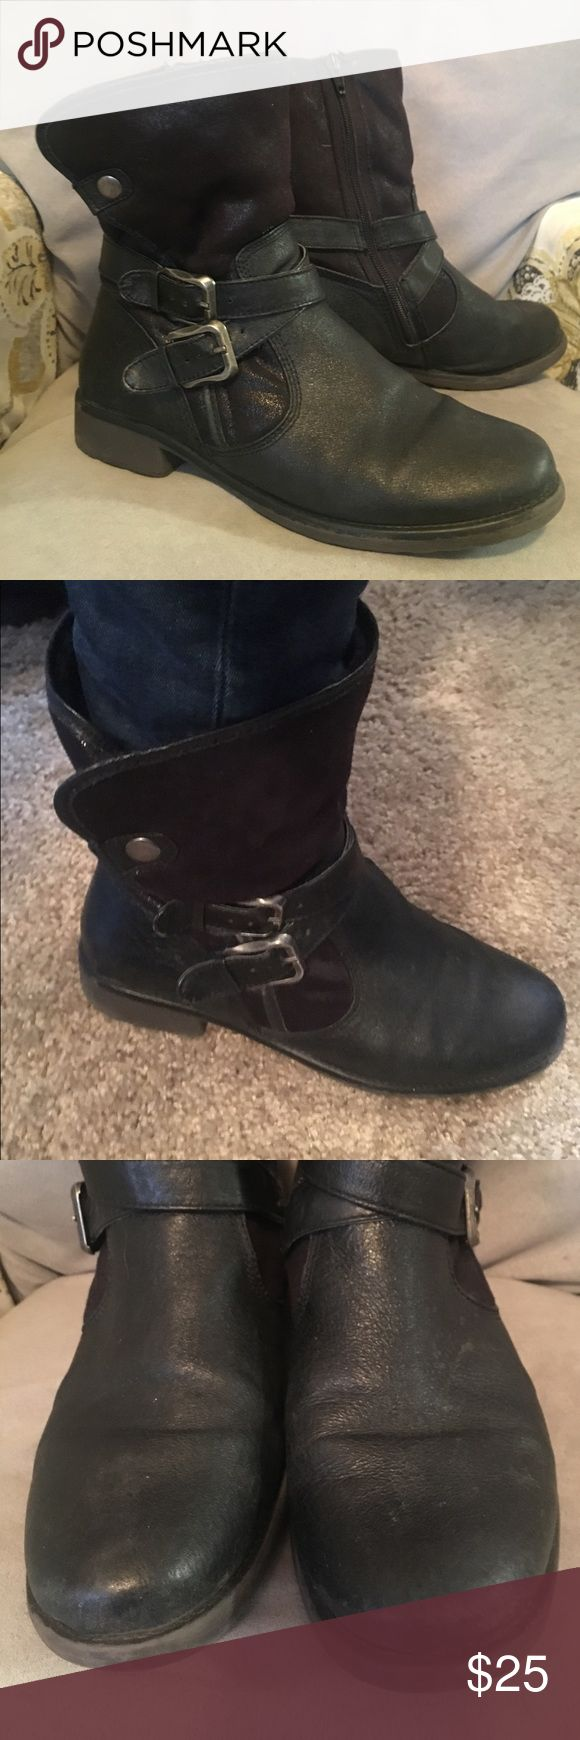 Bear Traps black leather boots Soft black leather ankle boots with a faux fur inside, rubber soles. Wear shown in pictures. Sad reposh, too small. I'm an 81/2-9. These are an 81/2 and run a little small. Bear traps Shoes Ankle Boots & Booties